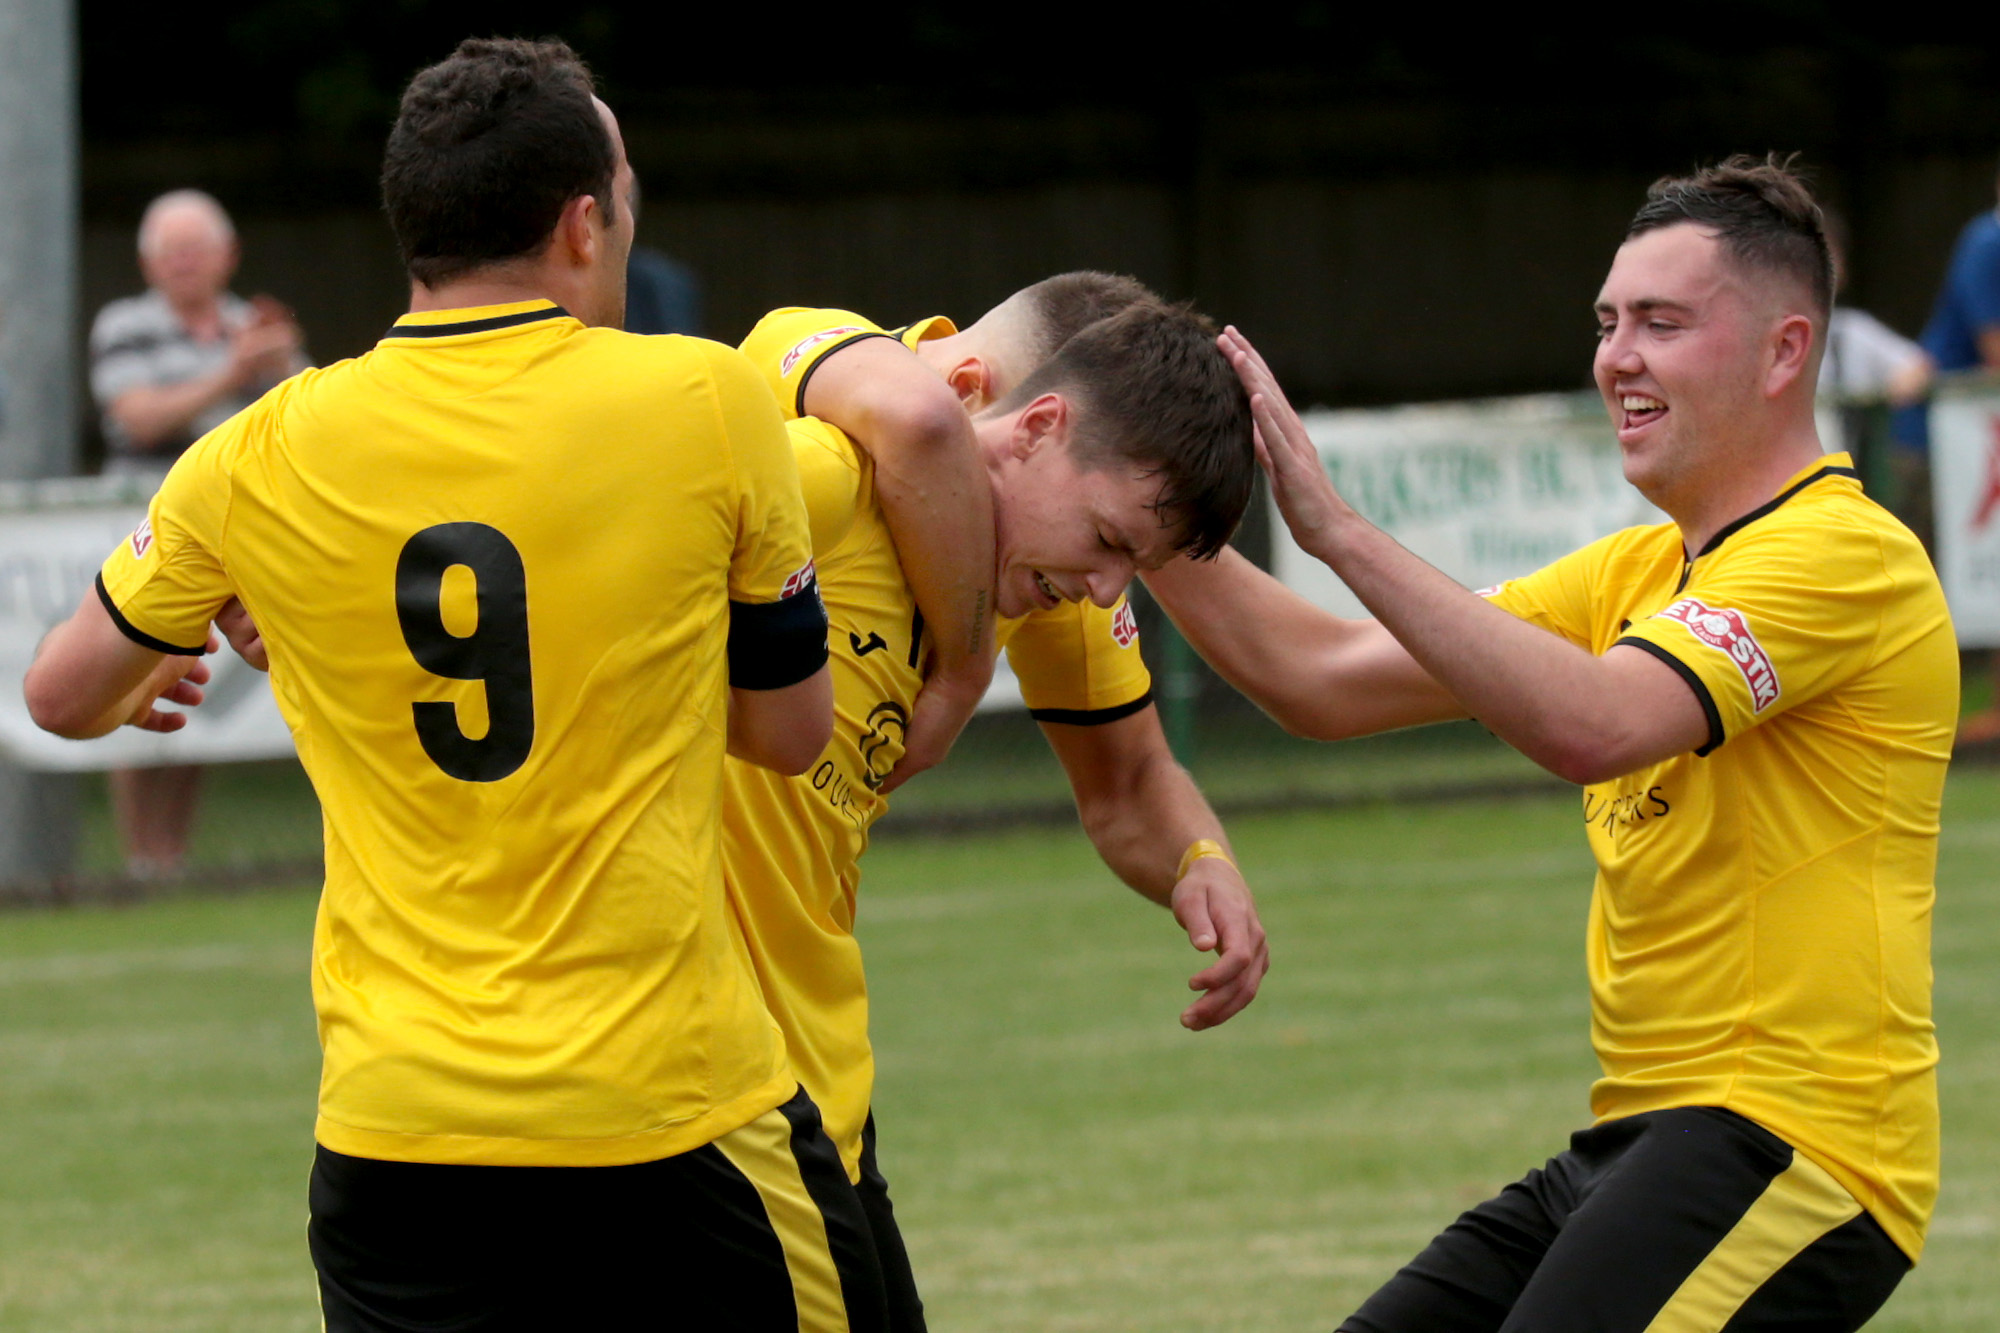 North Leigh celebrate a goal in their 3-1 win over Dunstable